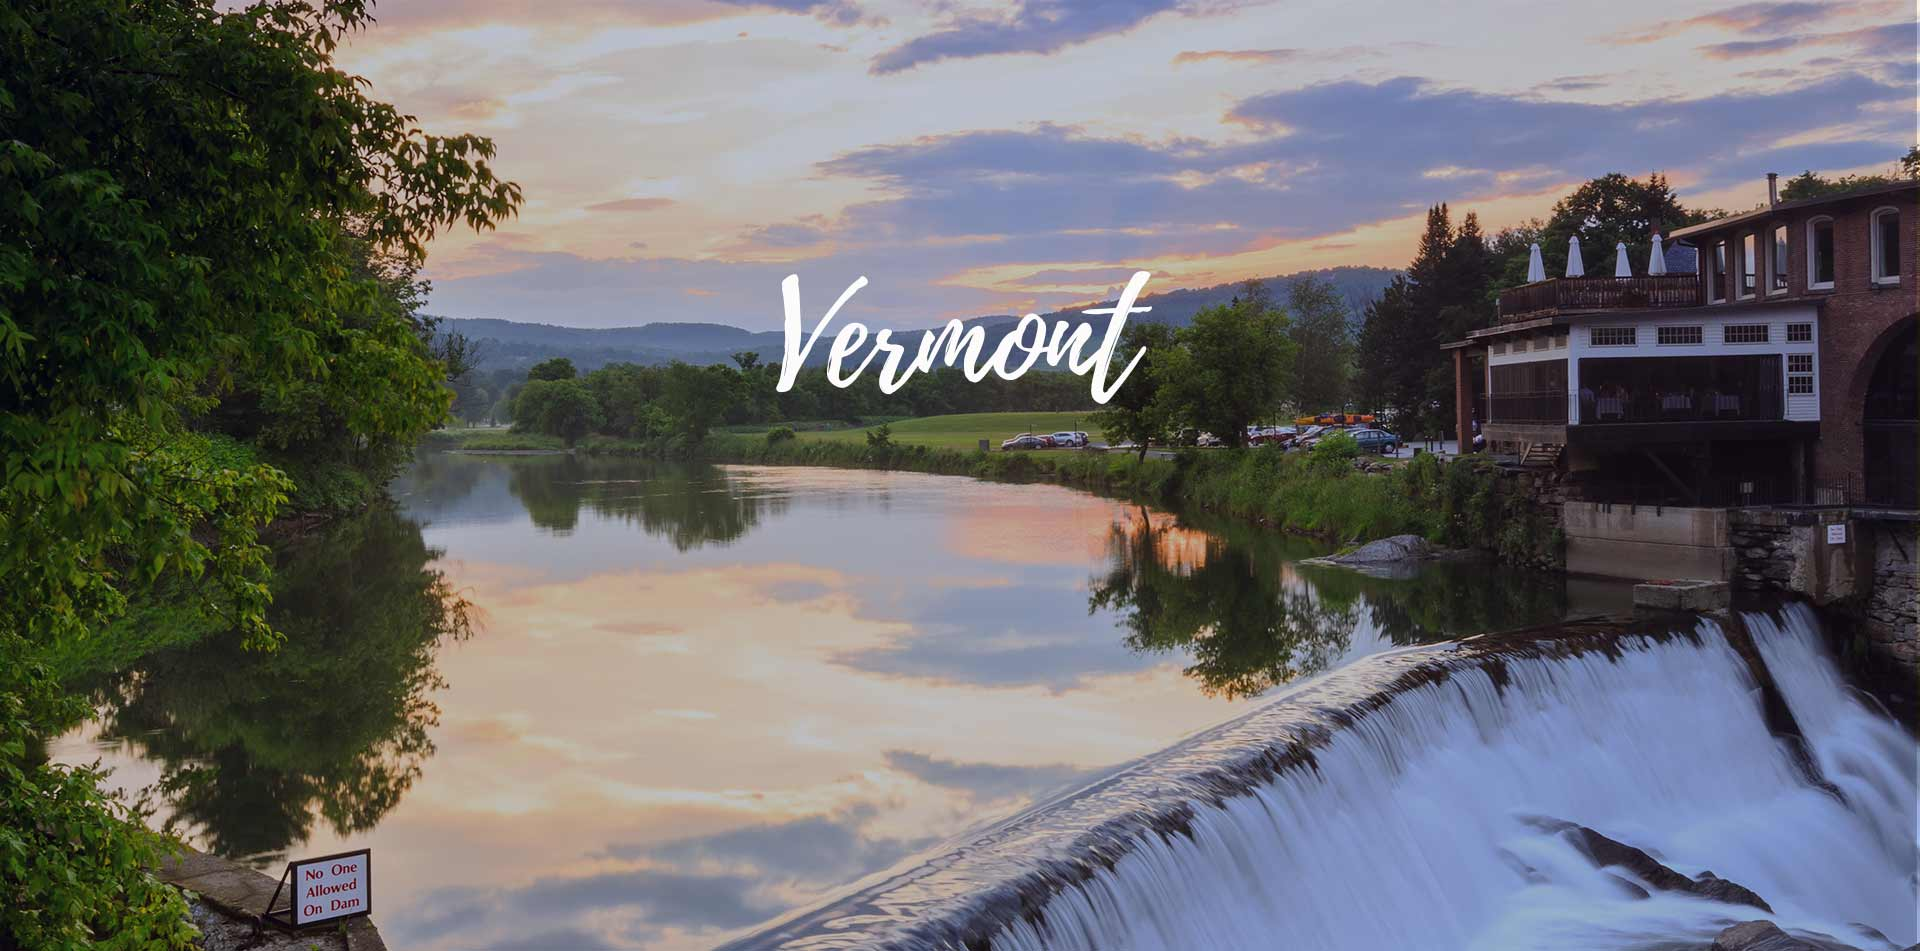 North America United States Vermont Ottaquechee River waterfall at Simon Pearce Restaurant - luxury vacation destinations